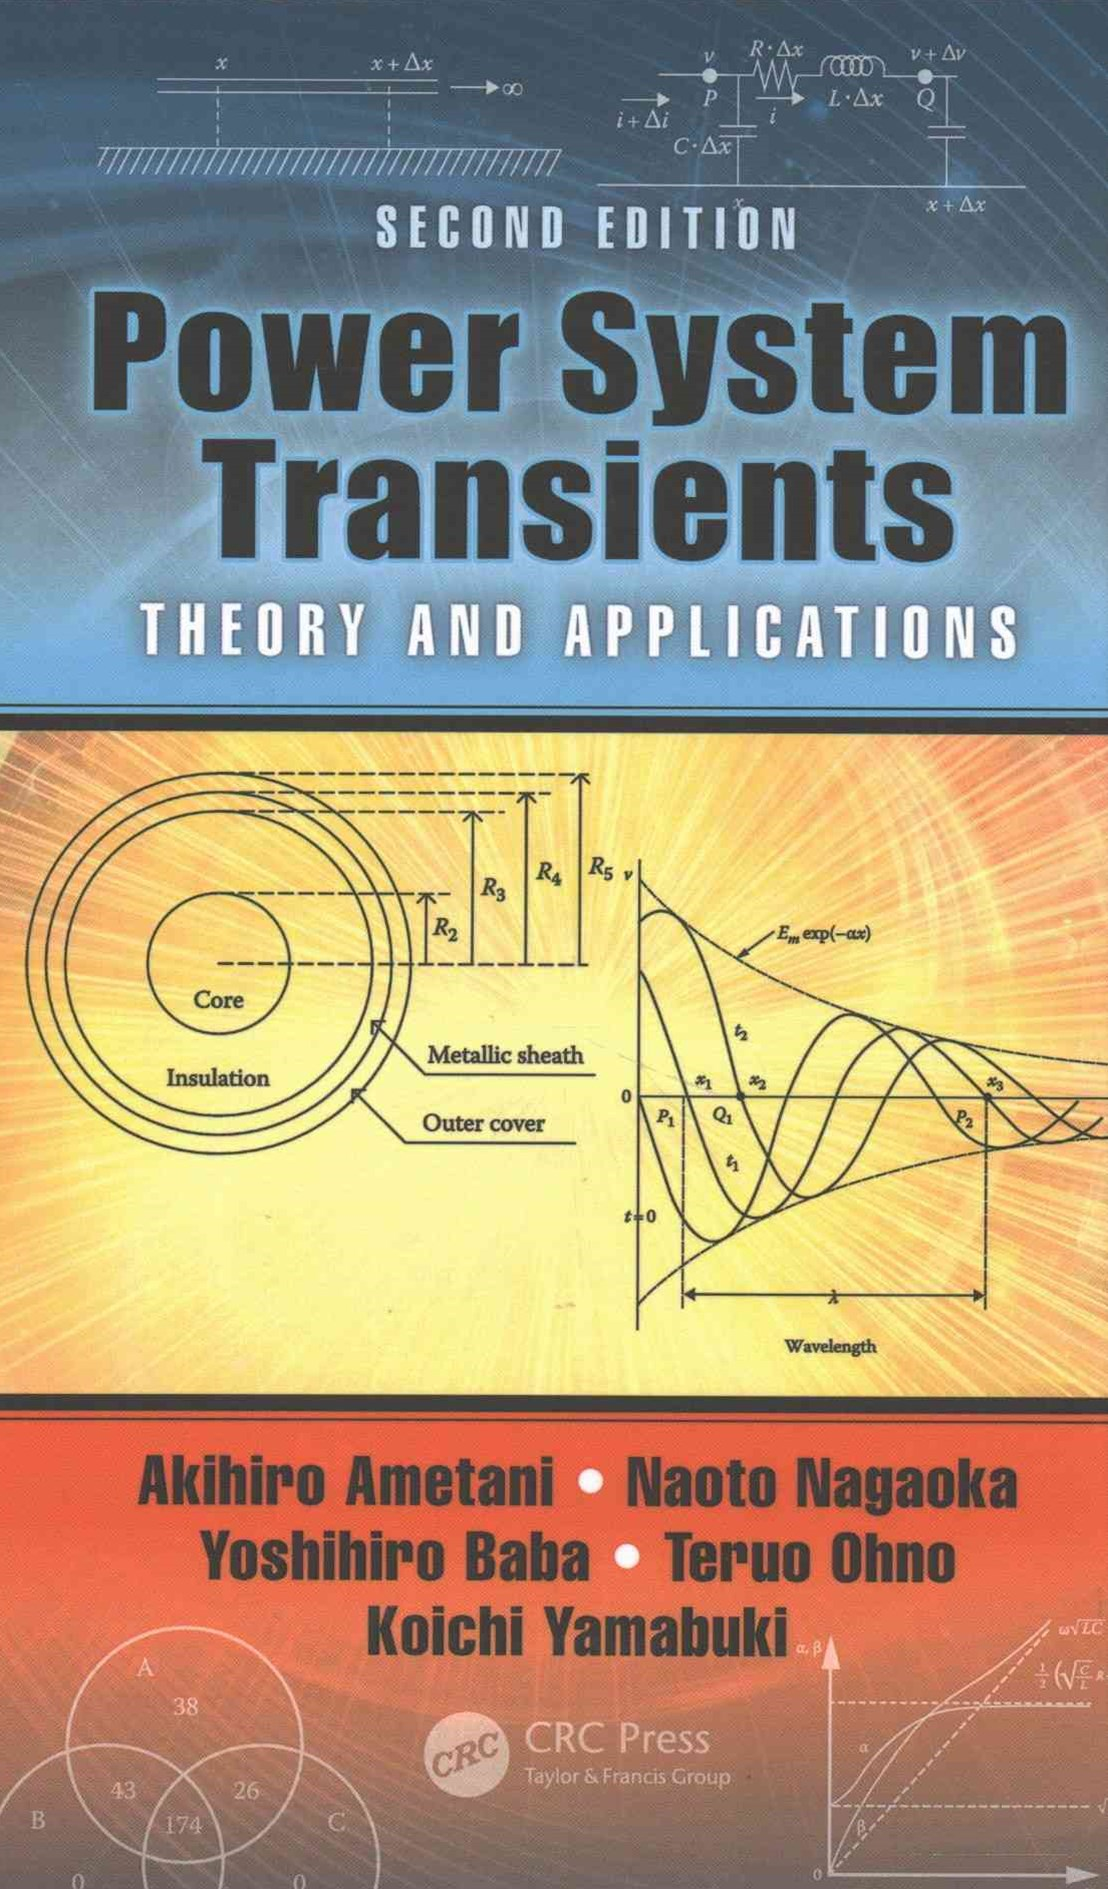 Power System Transients